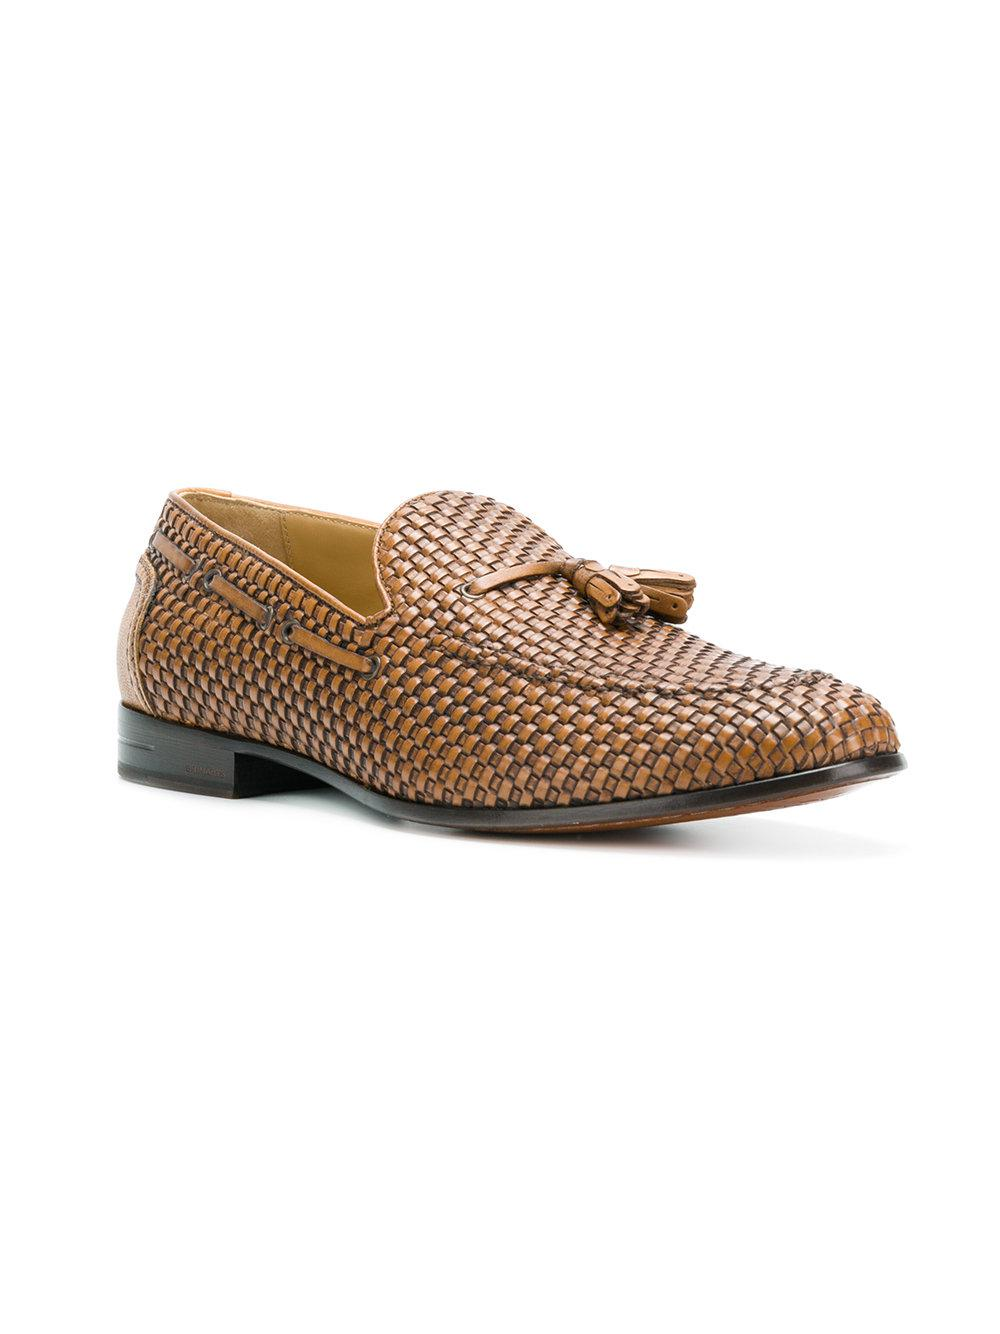 Brimarts woven tassel loafers free shipping recommend IL9xLCL